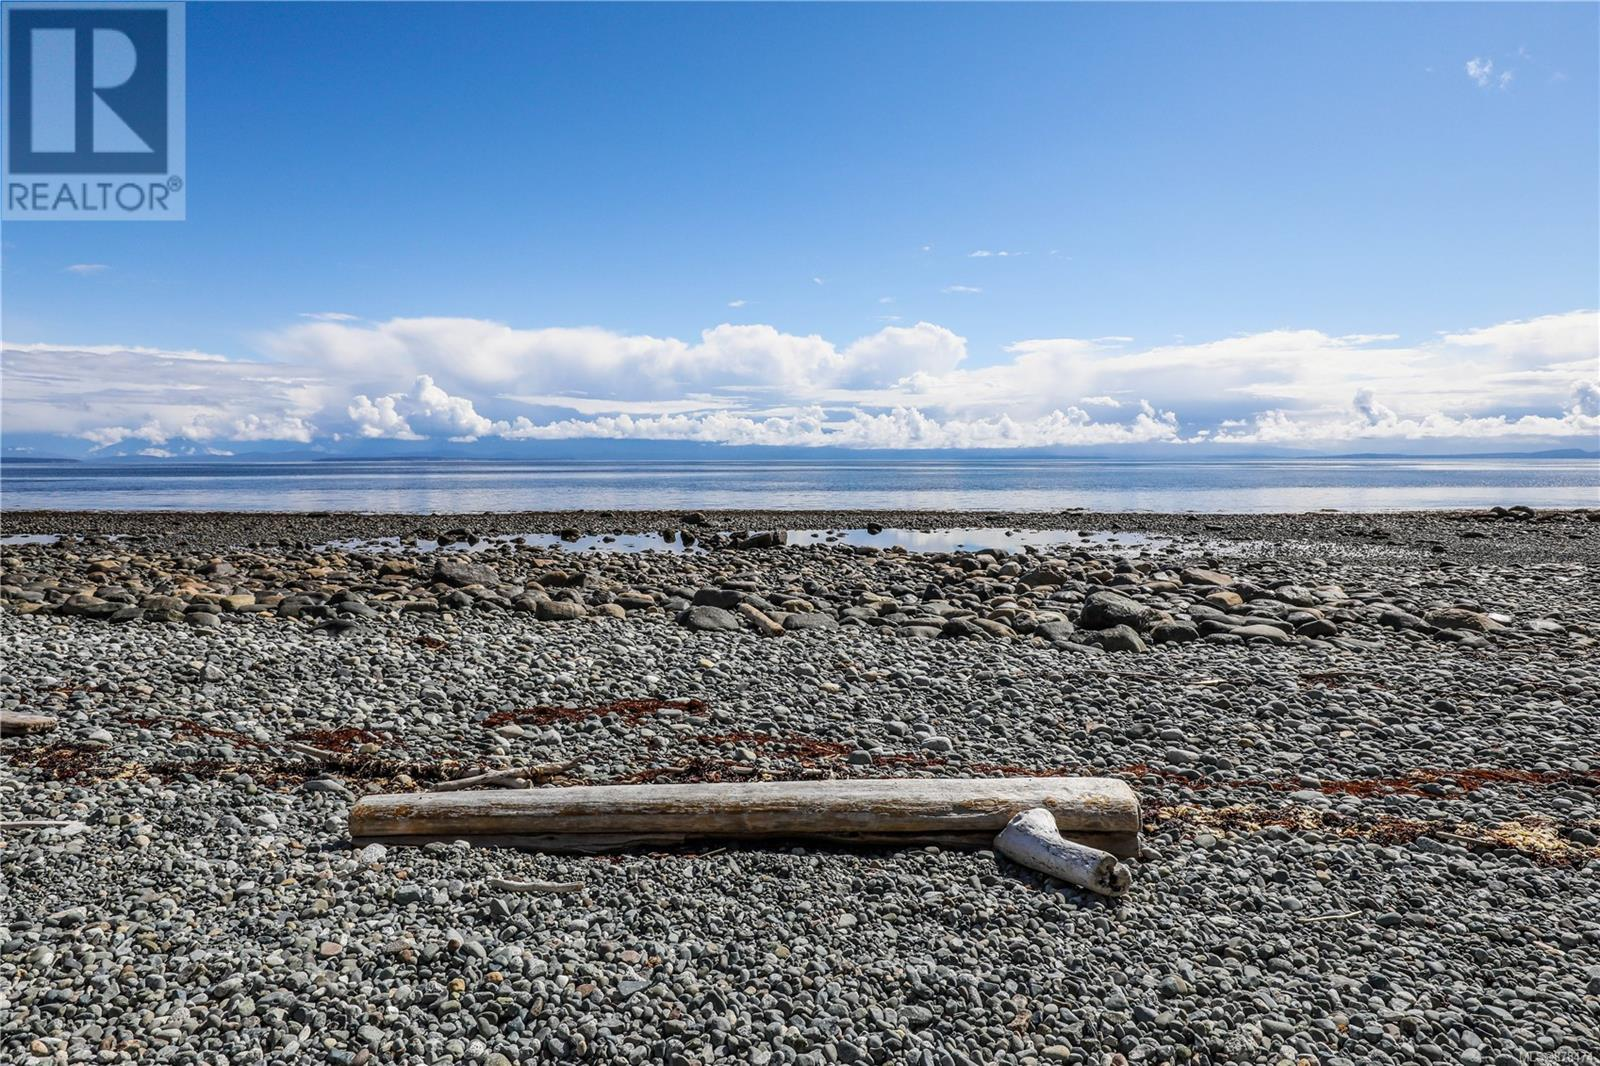 MLS® #878474 - Courtenay For sale Image #6